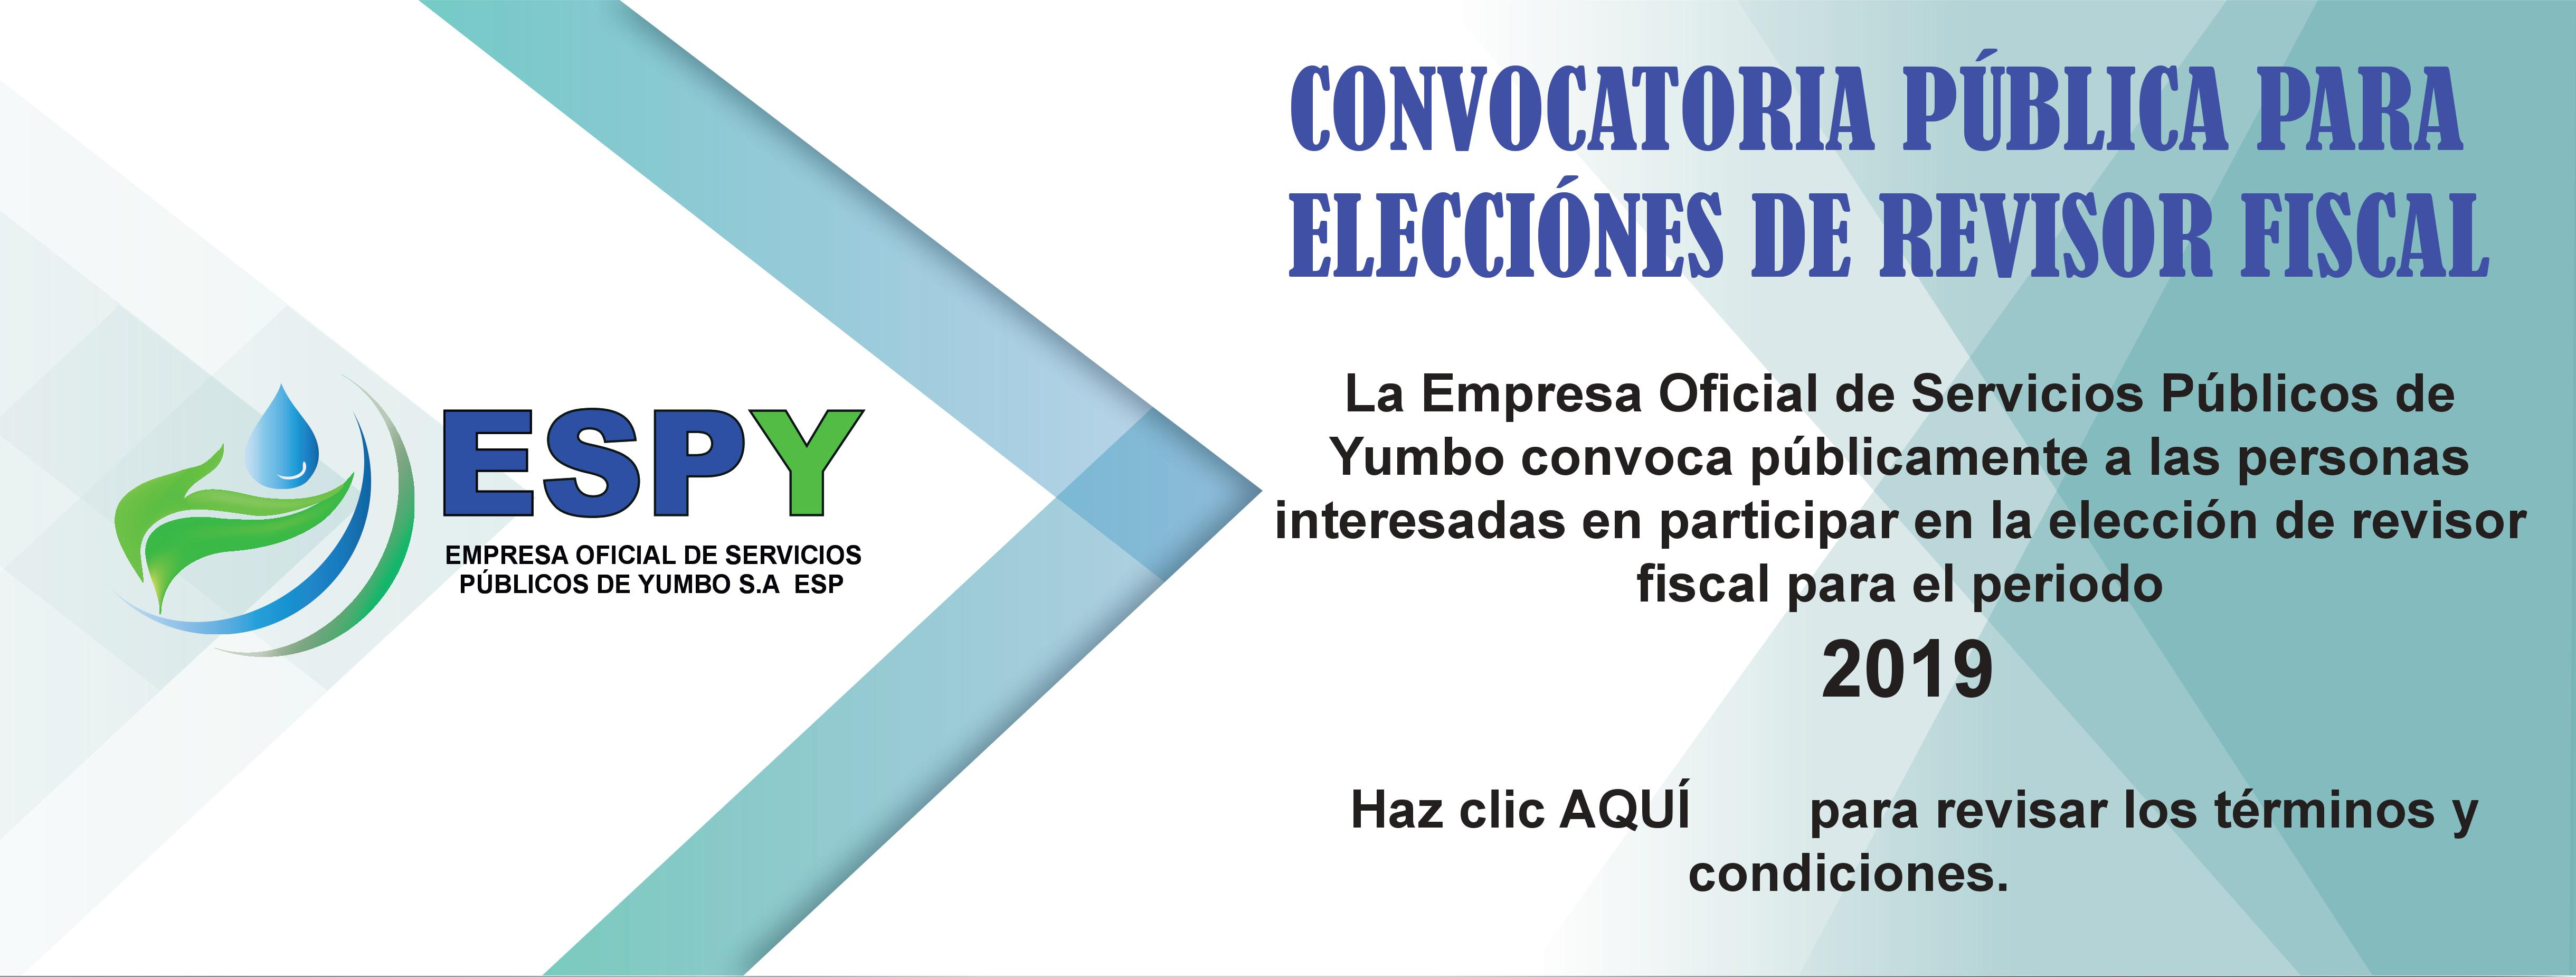 Convocatoria-revisor-fiscal-2019